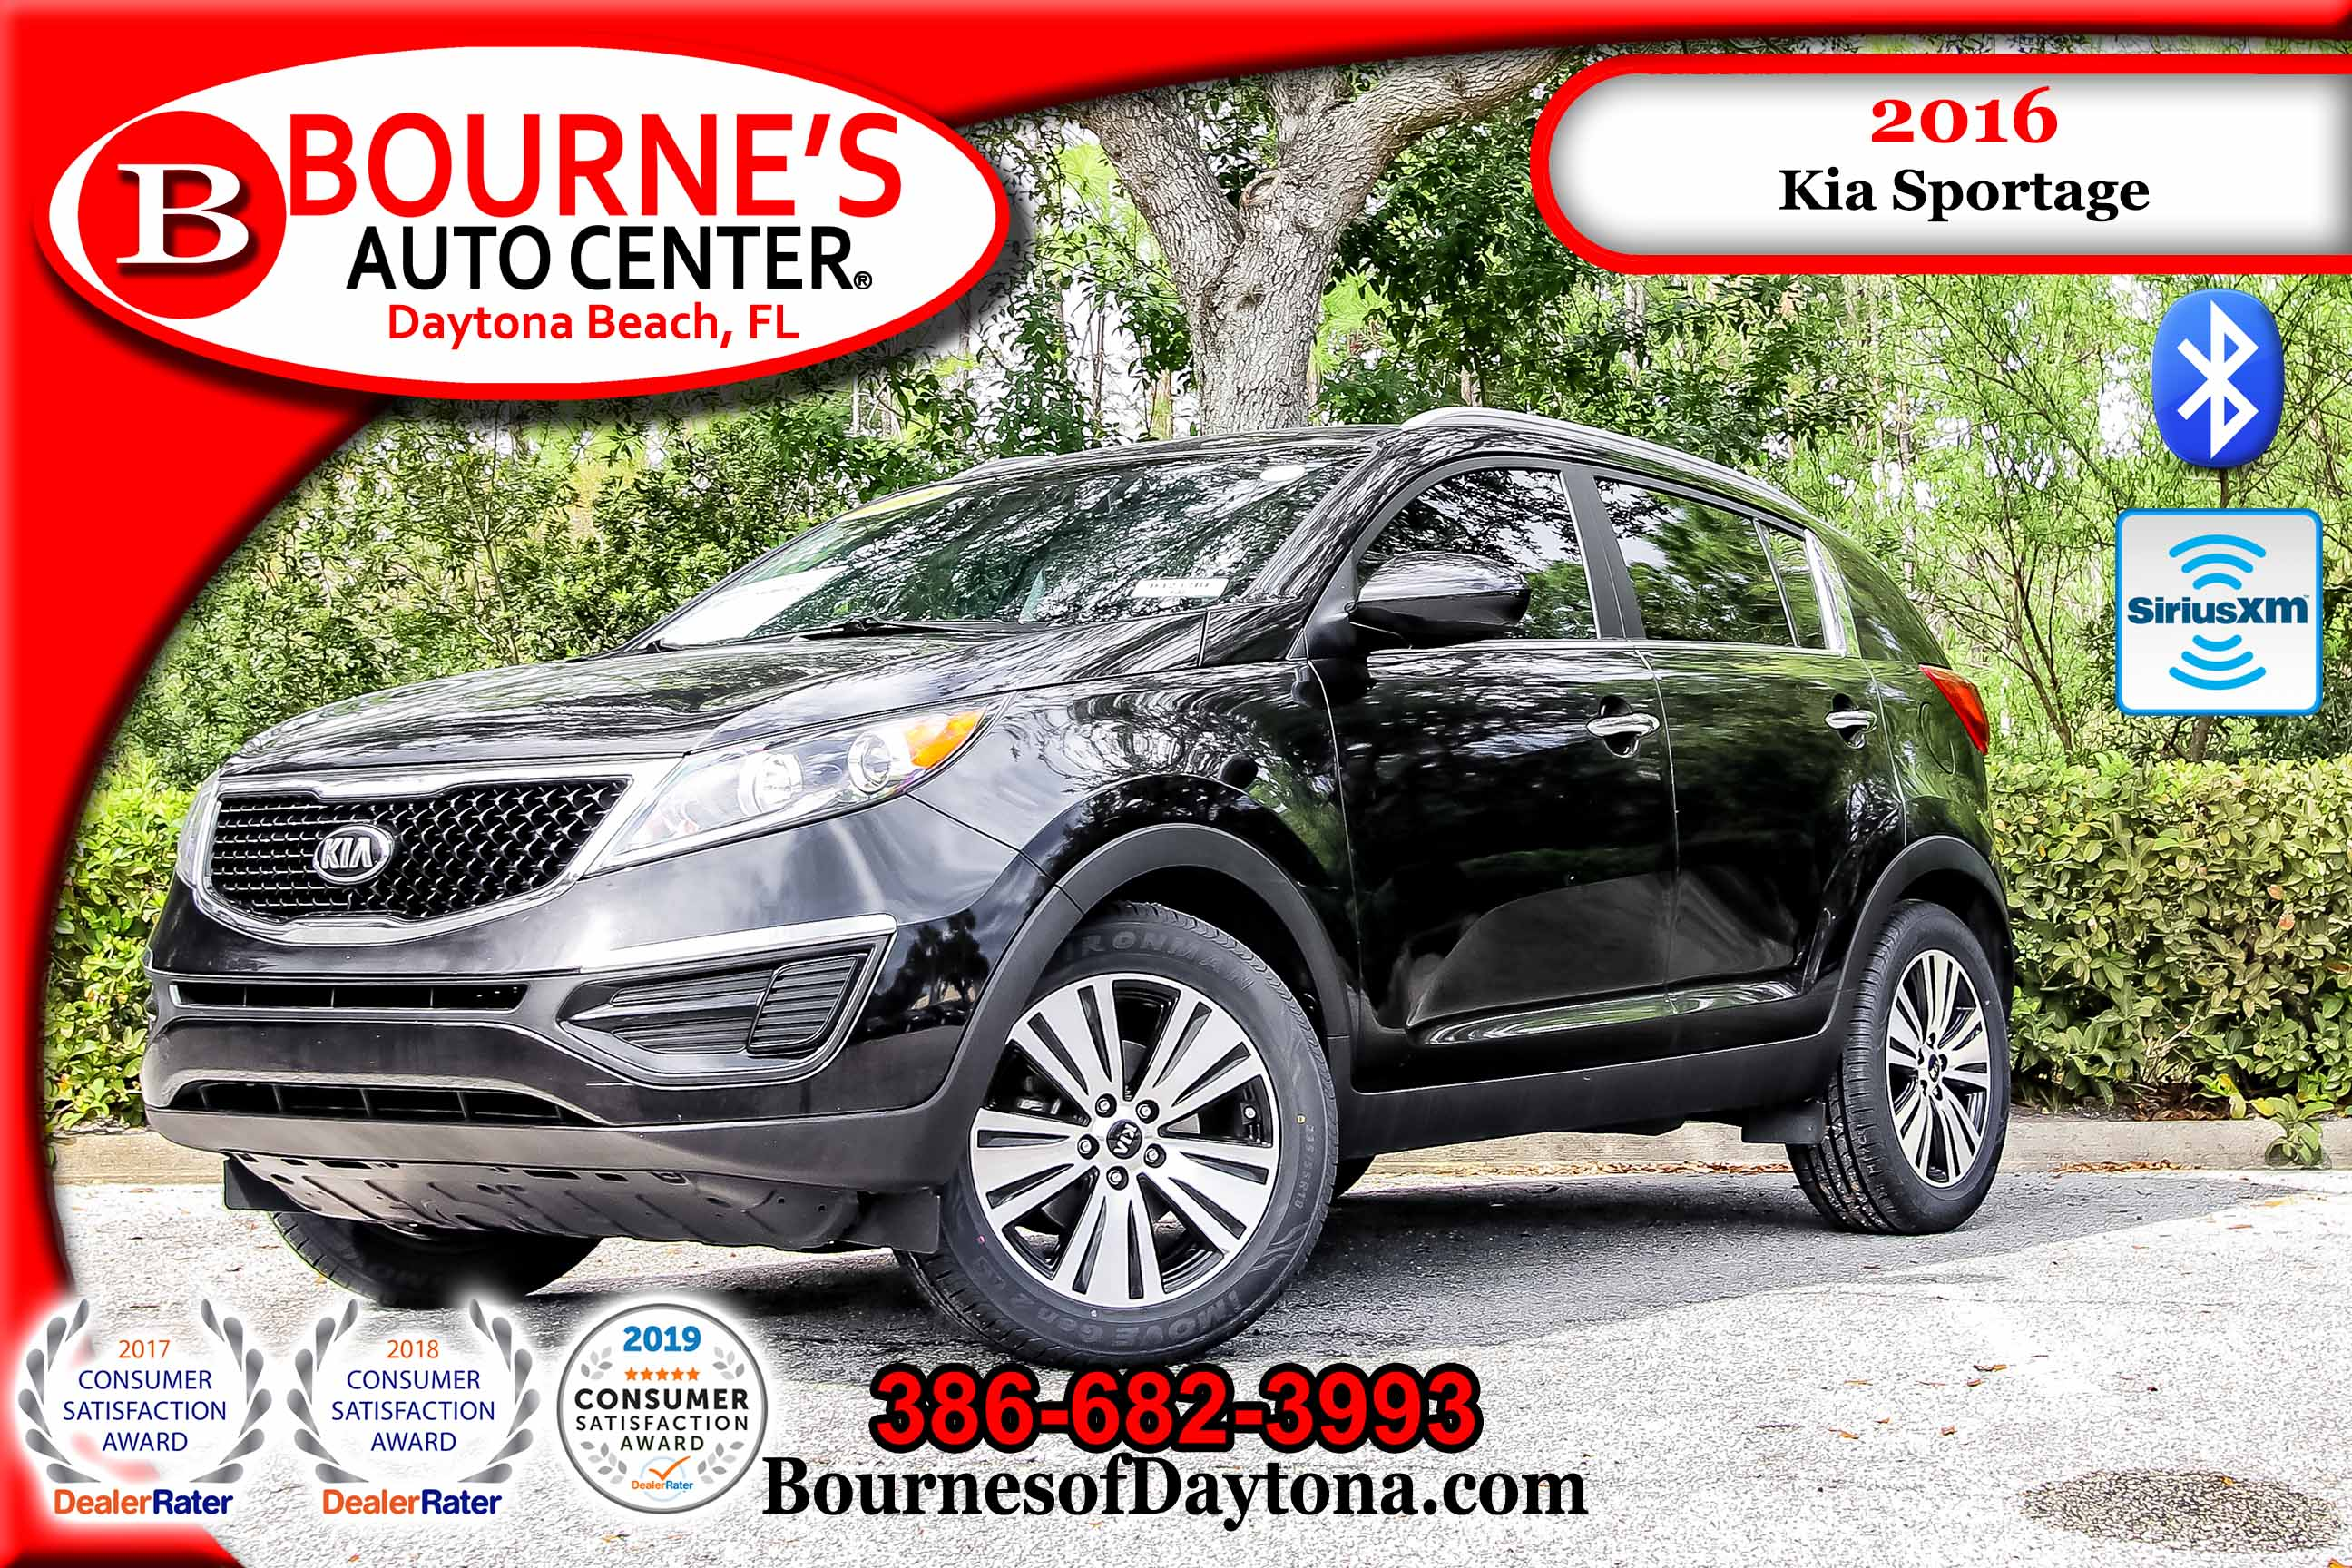 2016 Kia Sportage EX XM/ Bluetooth/ Leather SUV